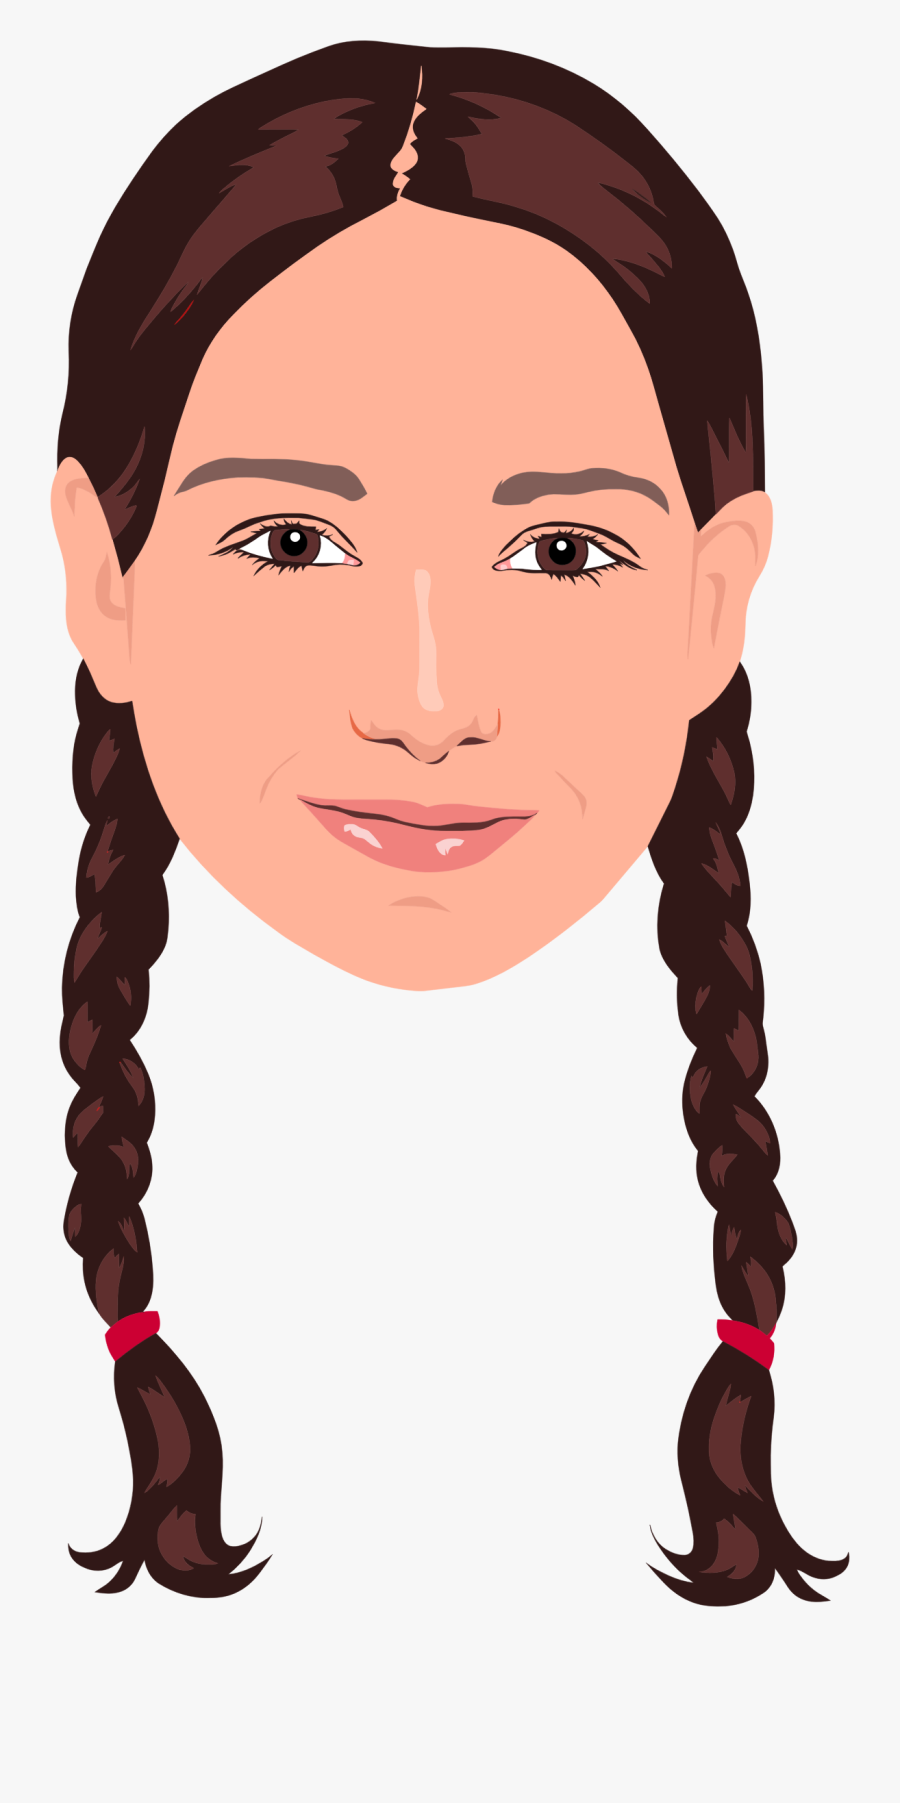 Hair Girl Cliparts - Girl With 2 Braids Clipart, Transparent Clipart